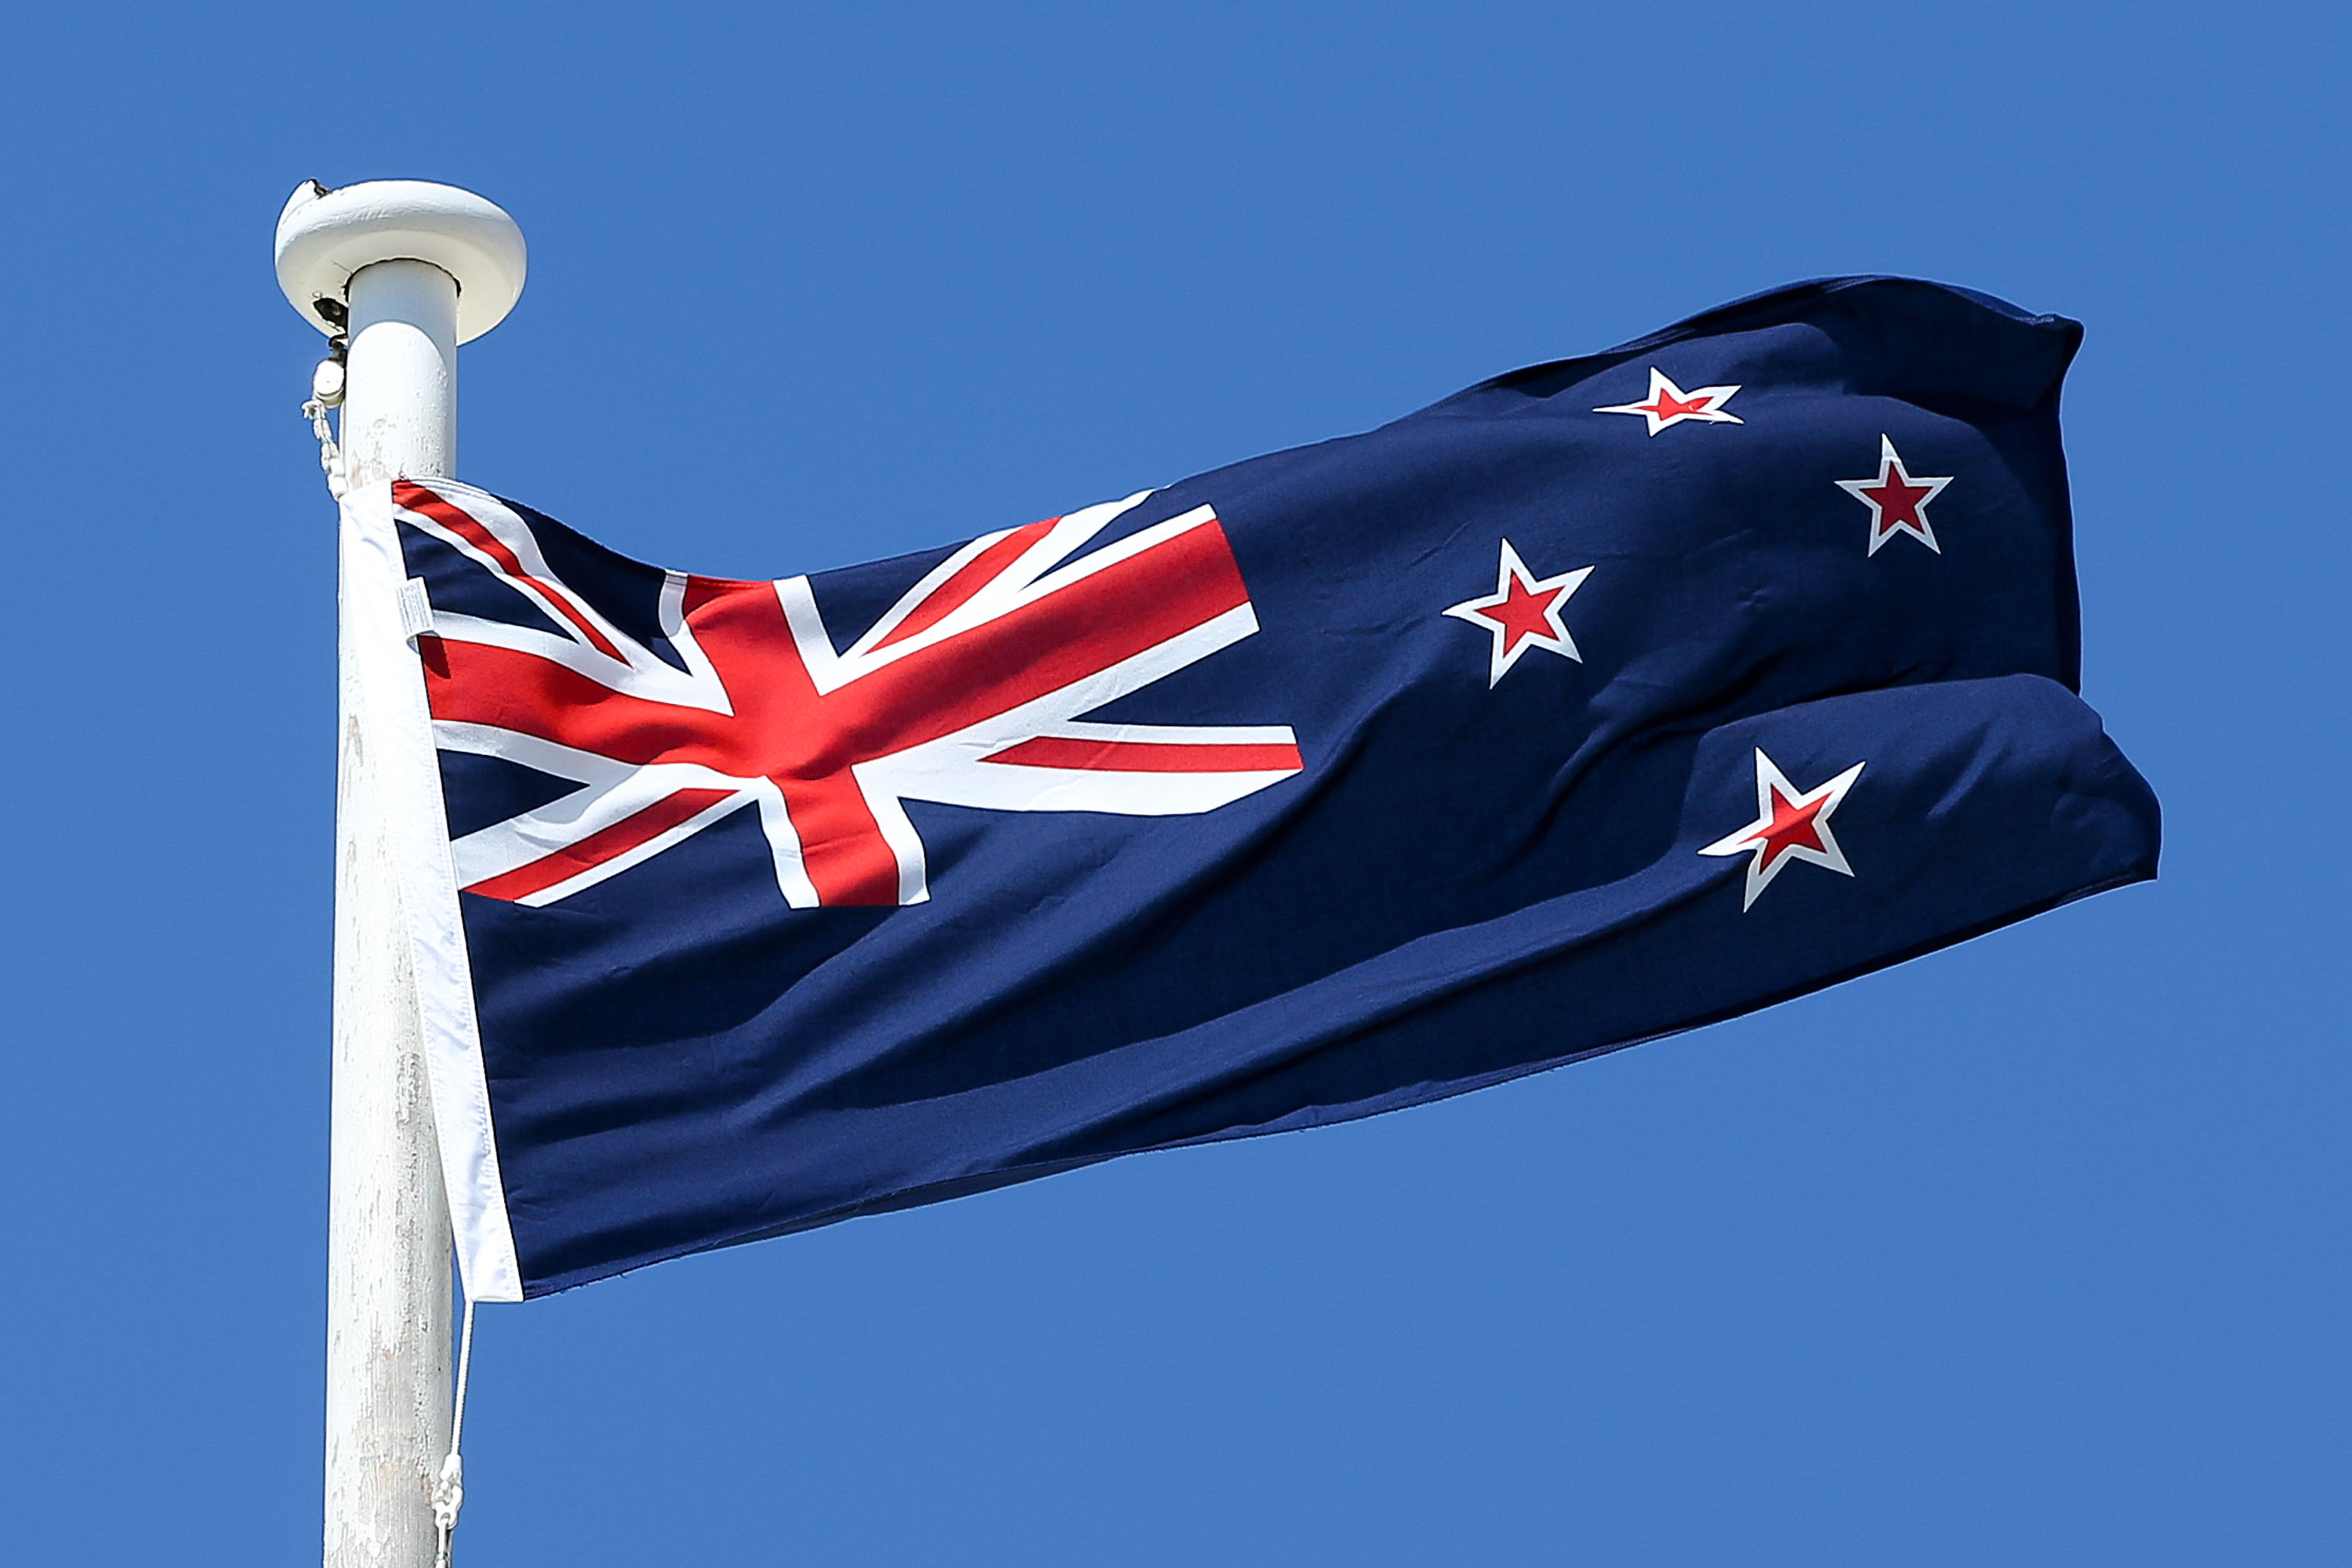 New Zealand rejects changing flags - CNN